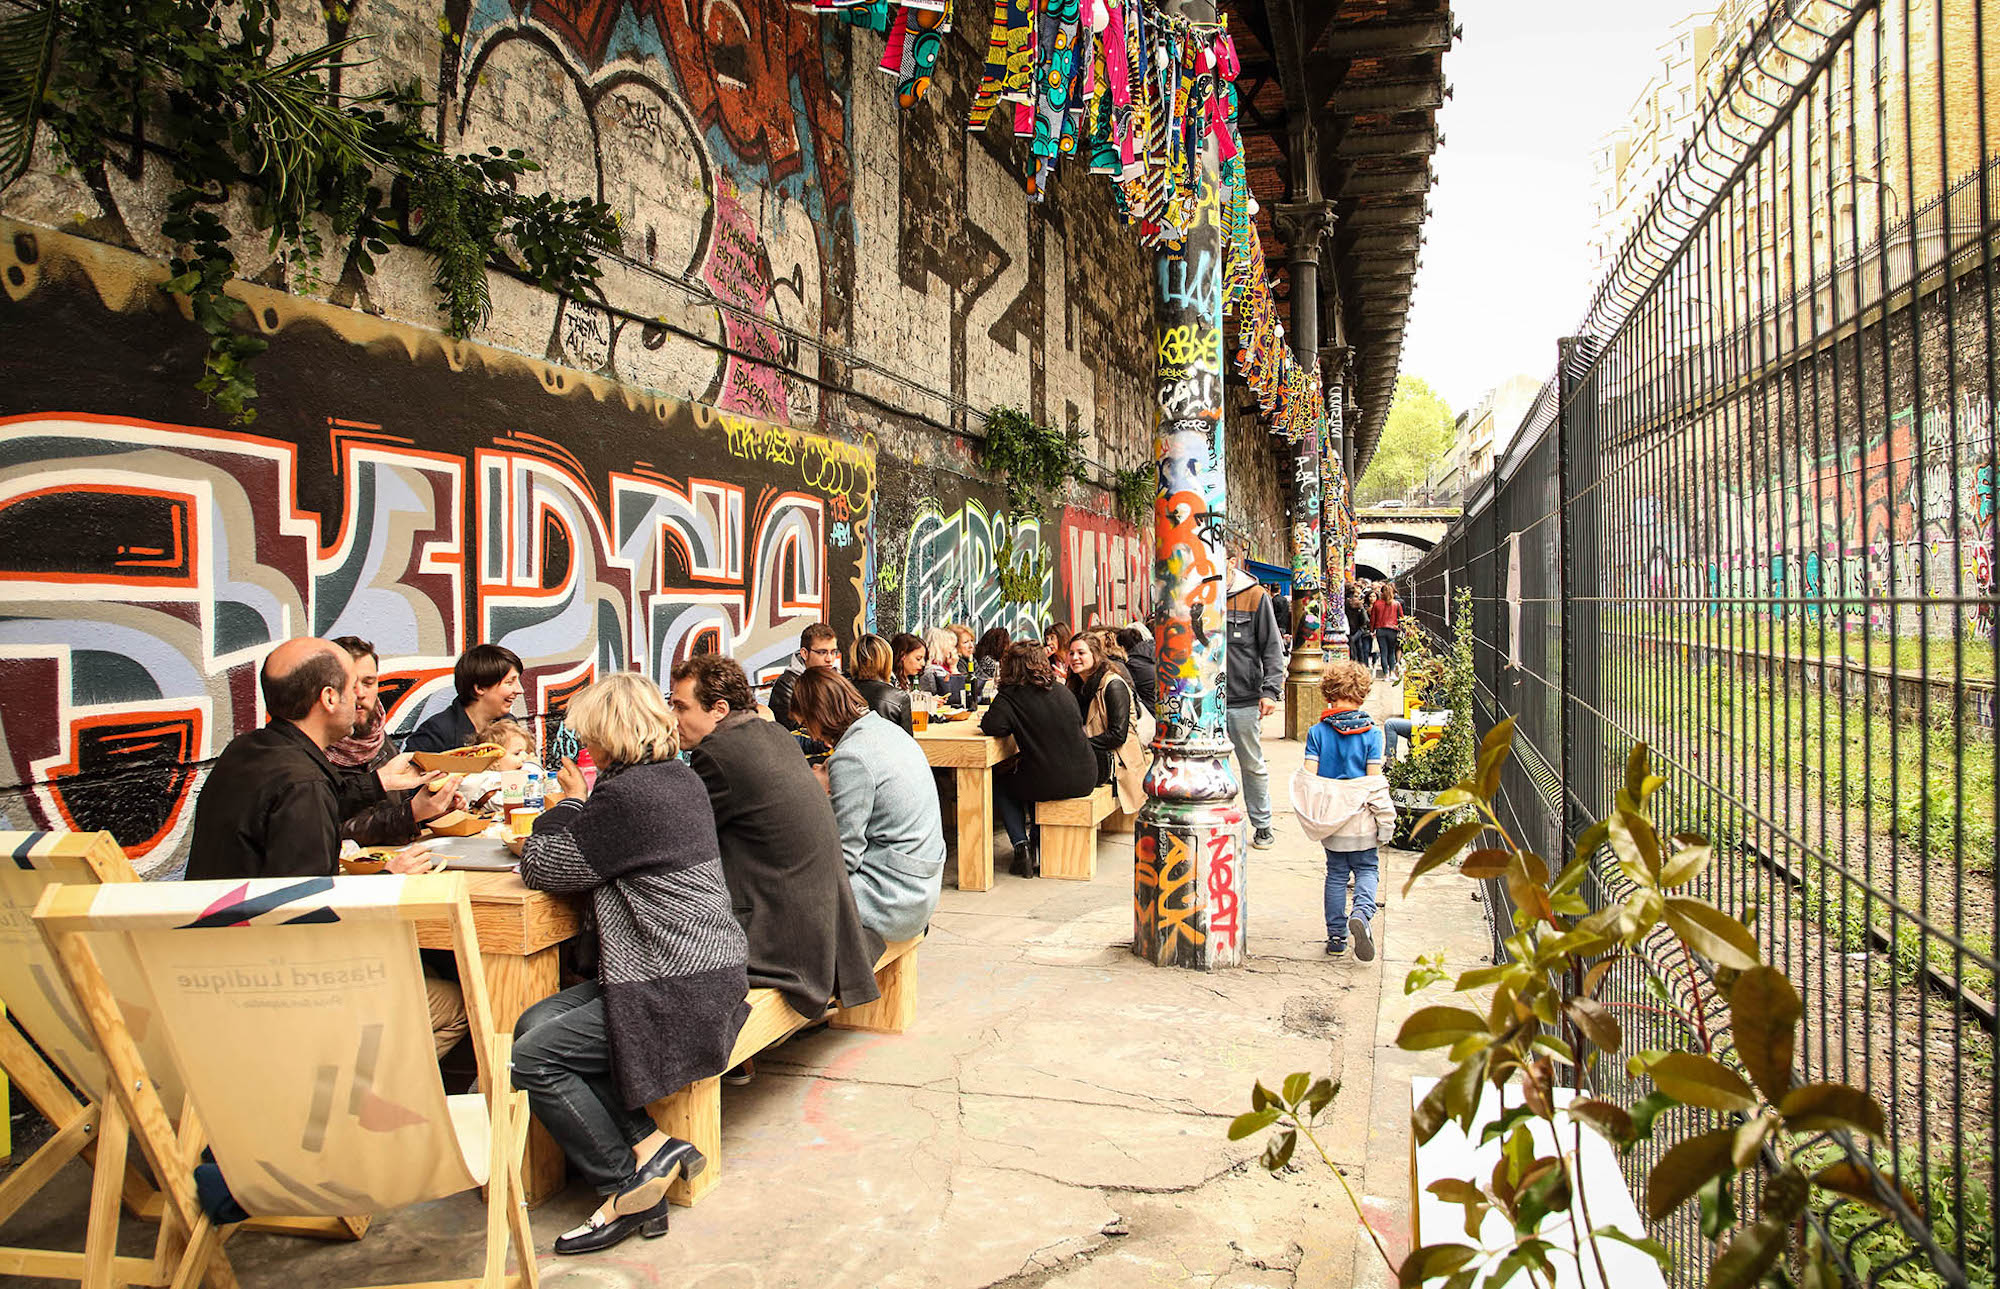 HiP Paris Blog rounds up new summer hangouts in Paris including the Hasard Ludique bar with its outdoor terrace covered in graffiti set along the platform of an abandoned train station.